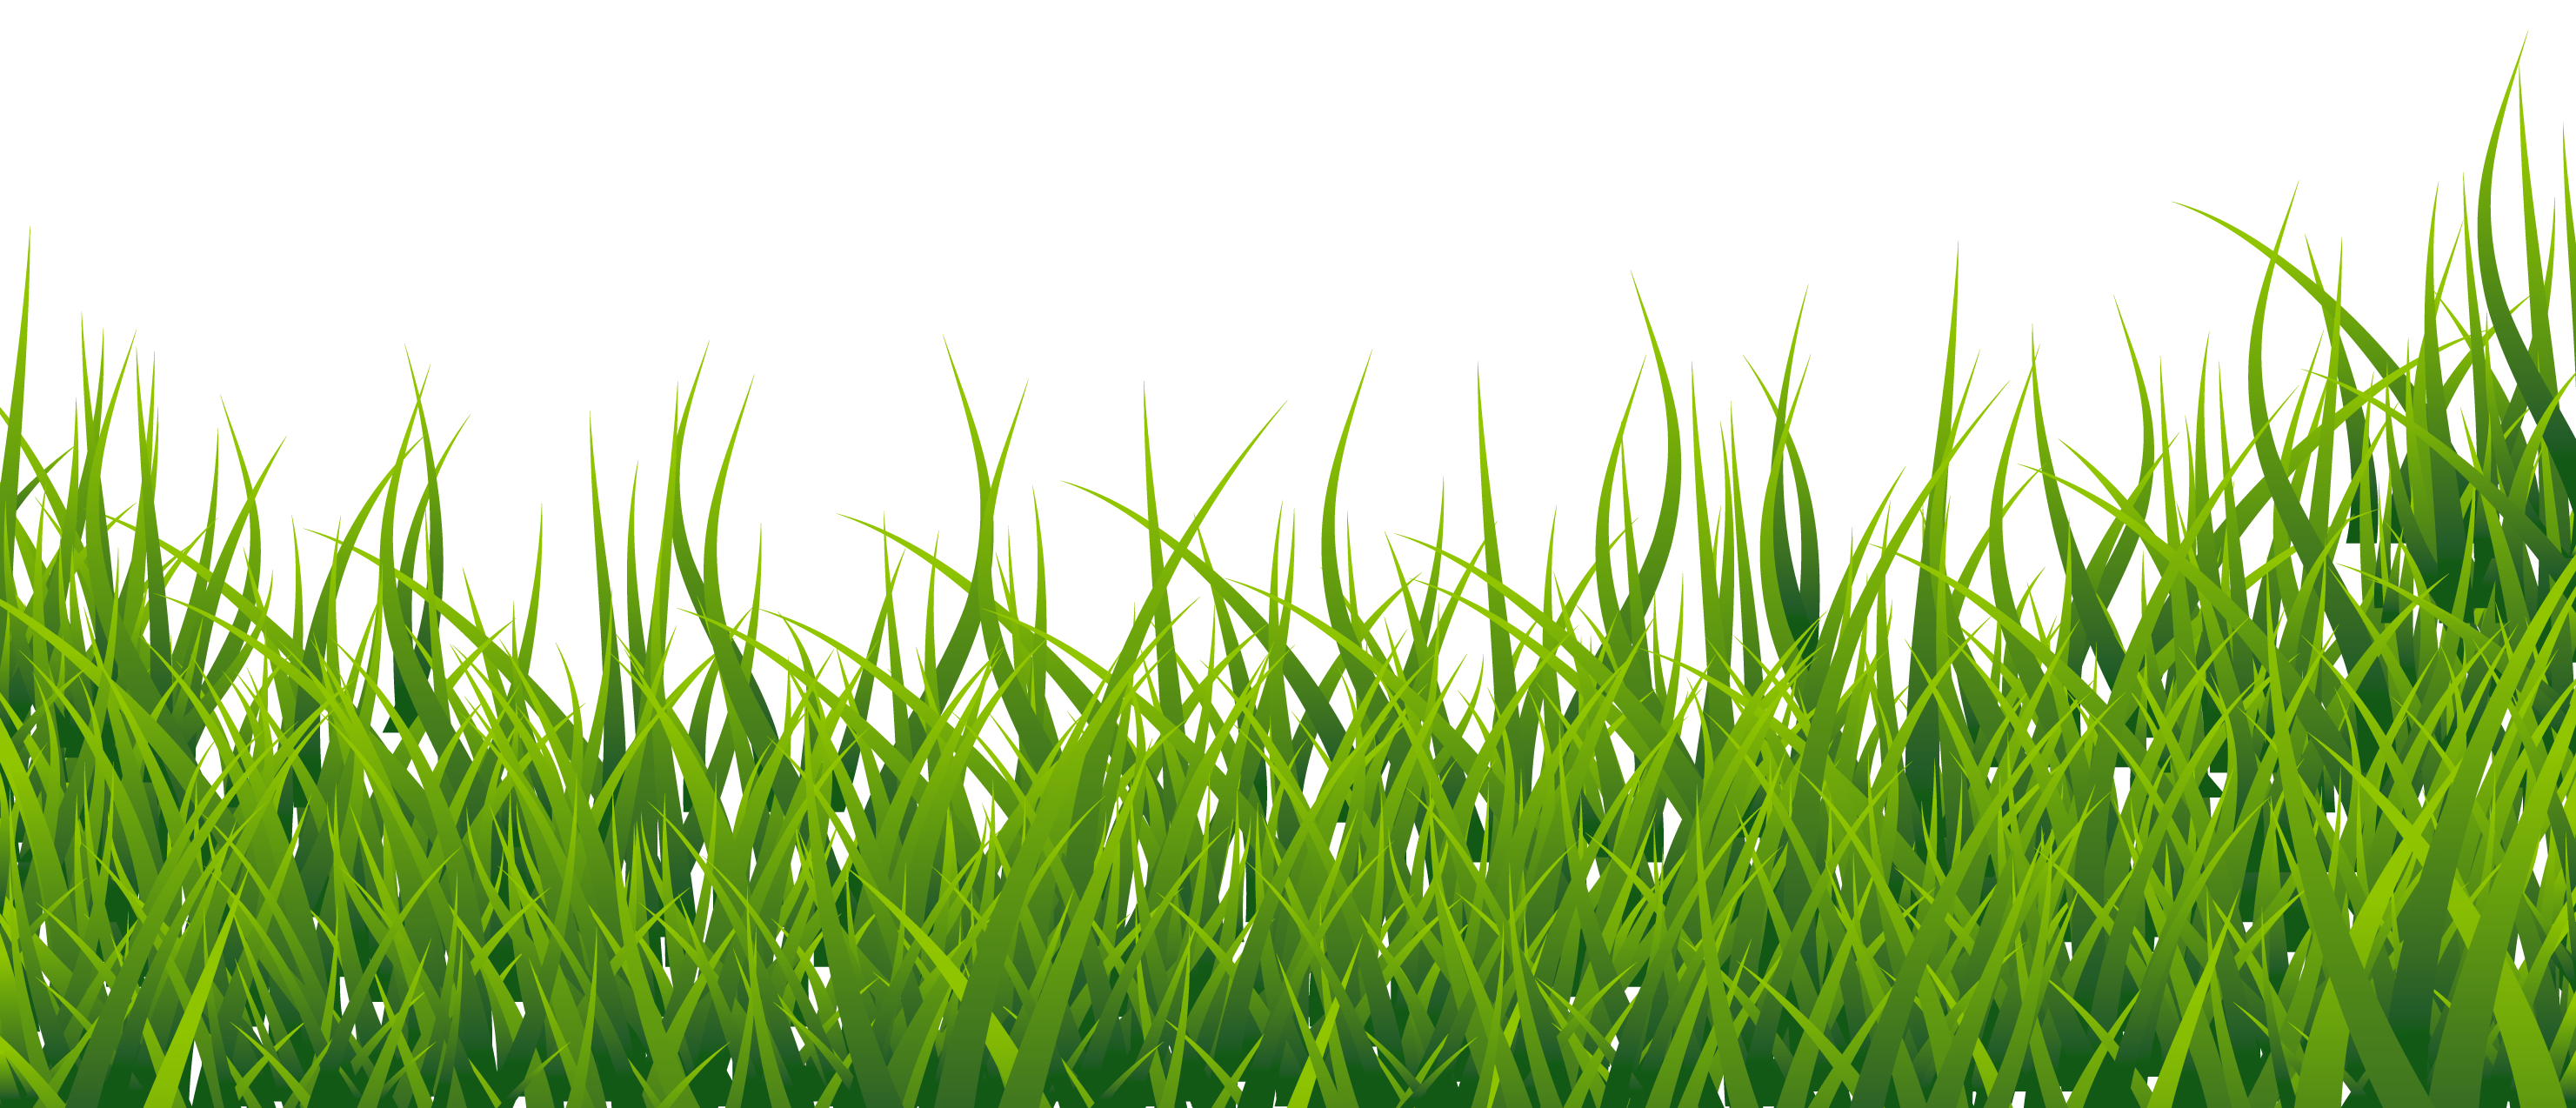 pin Wallpaper clipart grass #8 - Grass HD PNG